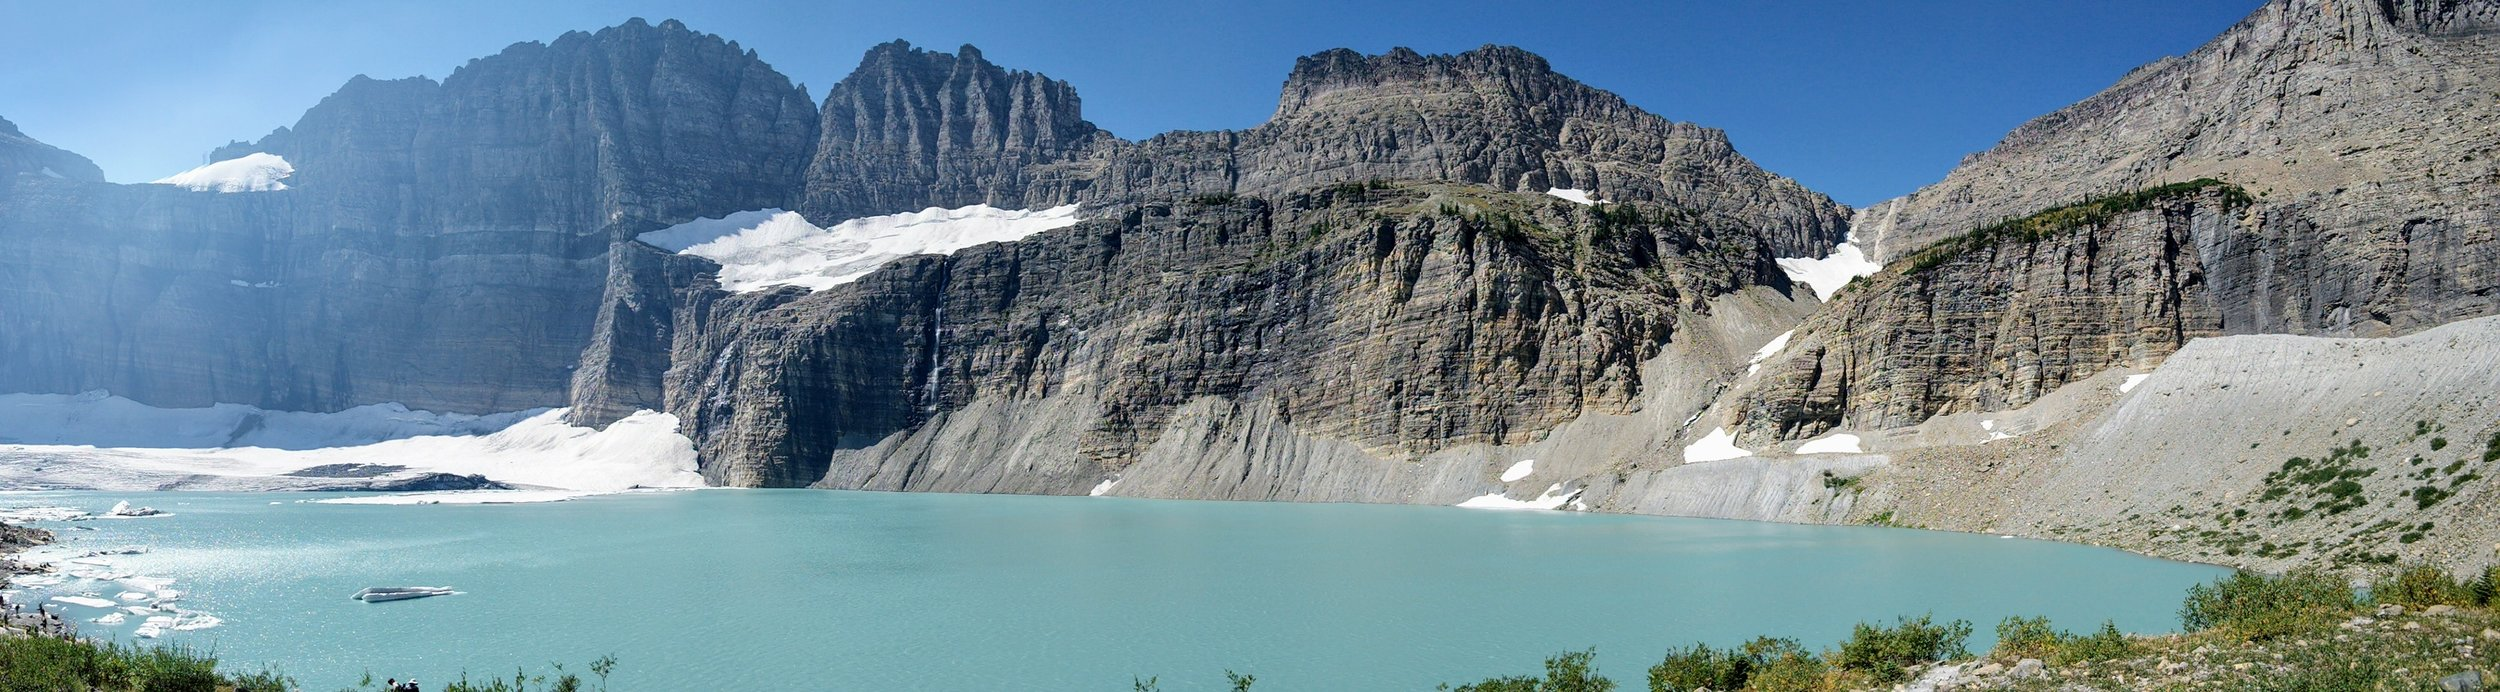 Upper Grinnell Lake with view of Grinnell Glacier on lefthand side